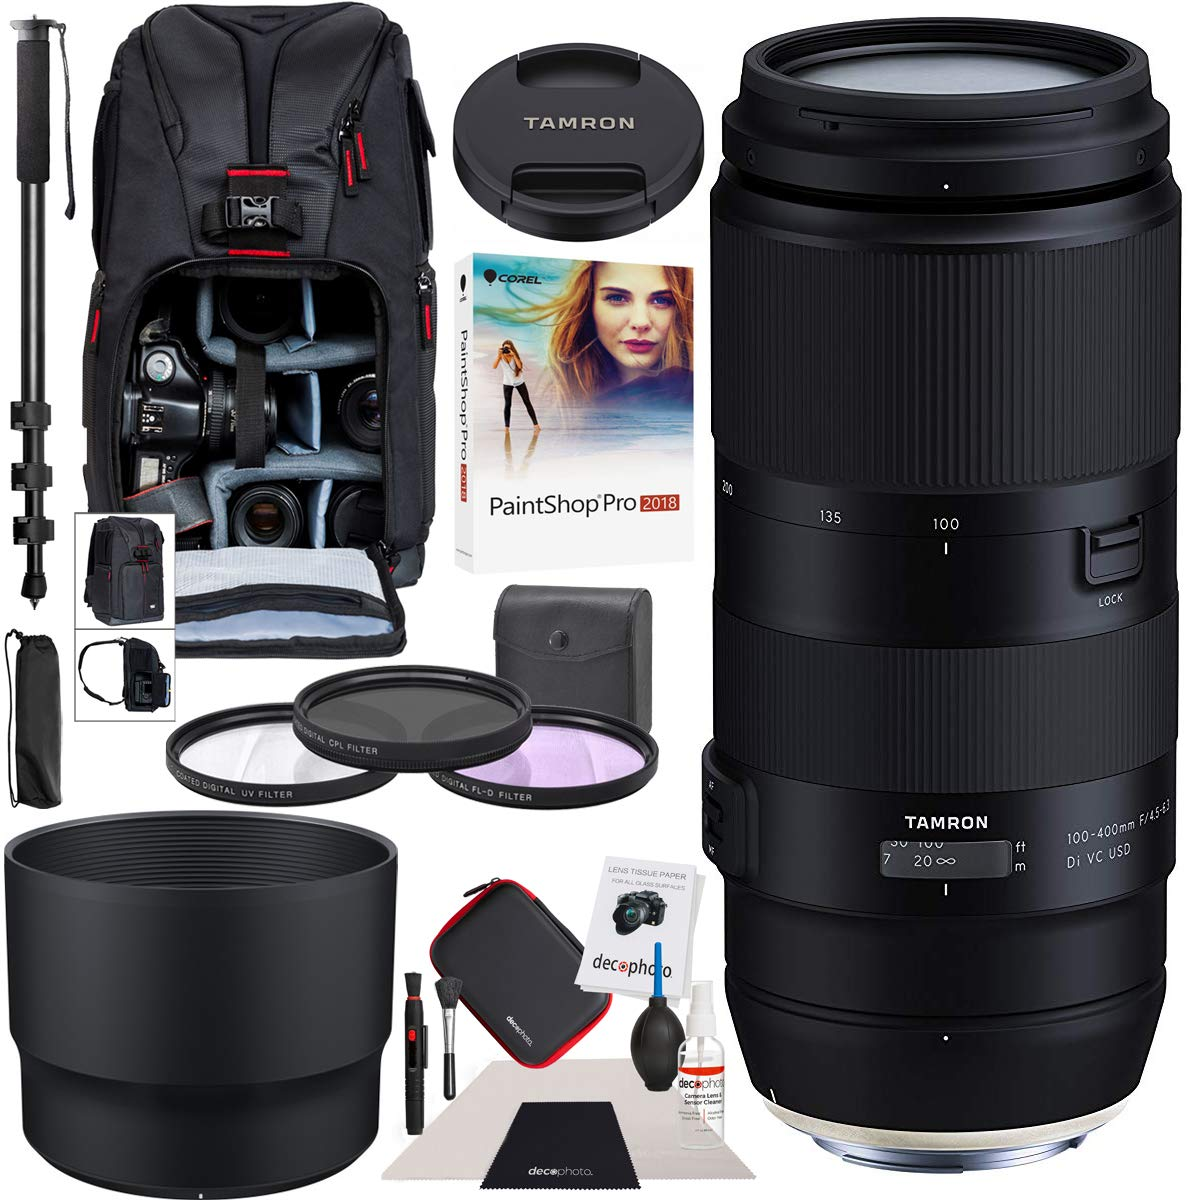 Tamron 100-400mm F/4.5-6.3 Di VC USD Lens for Canon AFA035C-700 Bundle with Sling Backpack, Paintshop Pro 2018, 72-Inch Monopod, 67mm Filter Kit and Cleaning Kit by Tamron